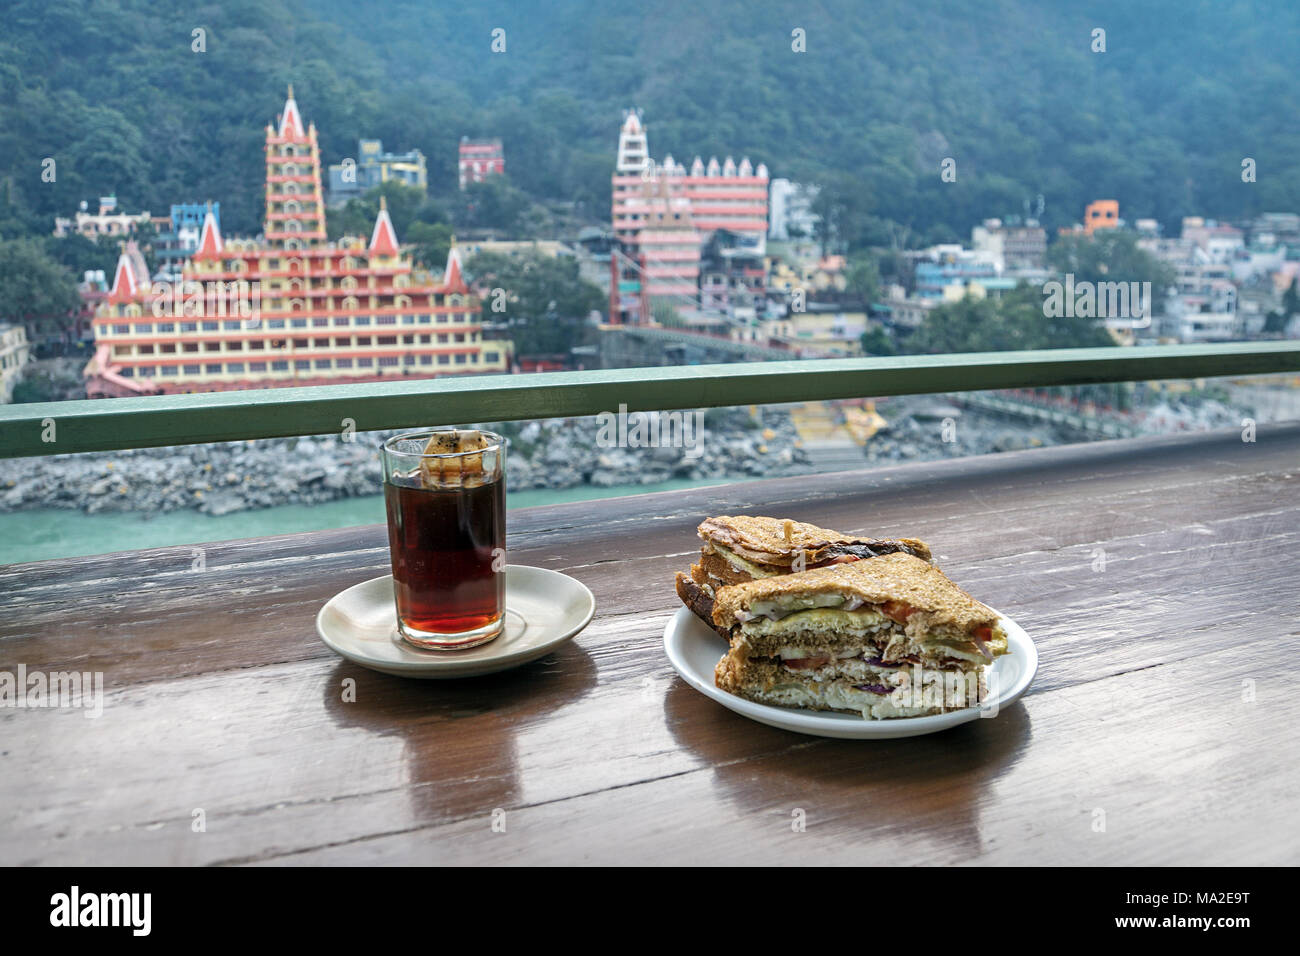 Vegetarian Temple Food Stock Photos & Vegetarian Temple Food Stock ...